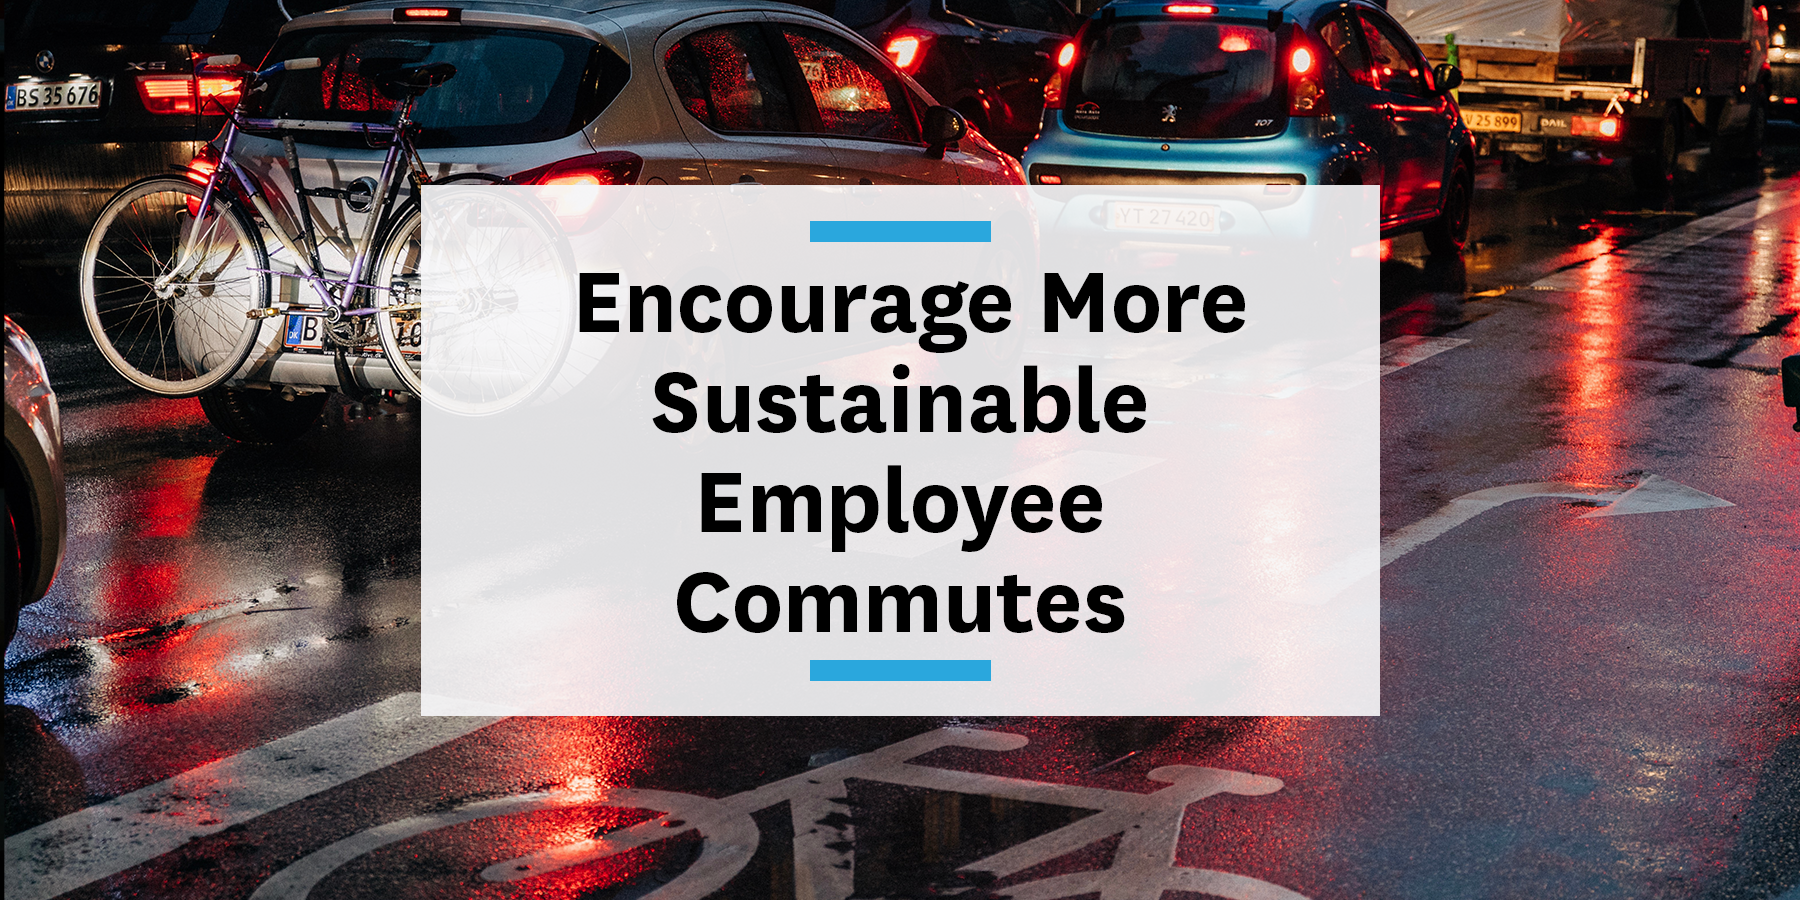 Encourage sustainable employee commutes as executive and HR teams